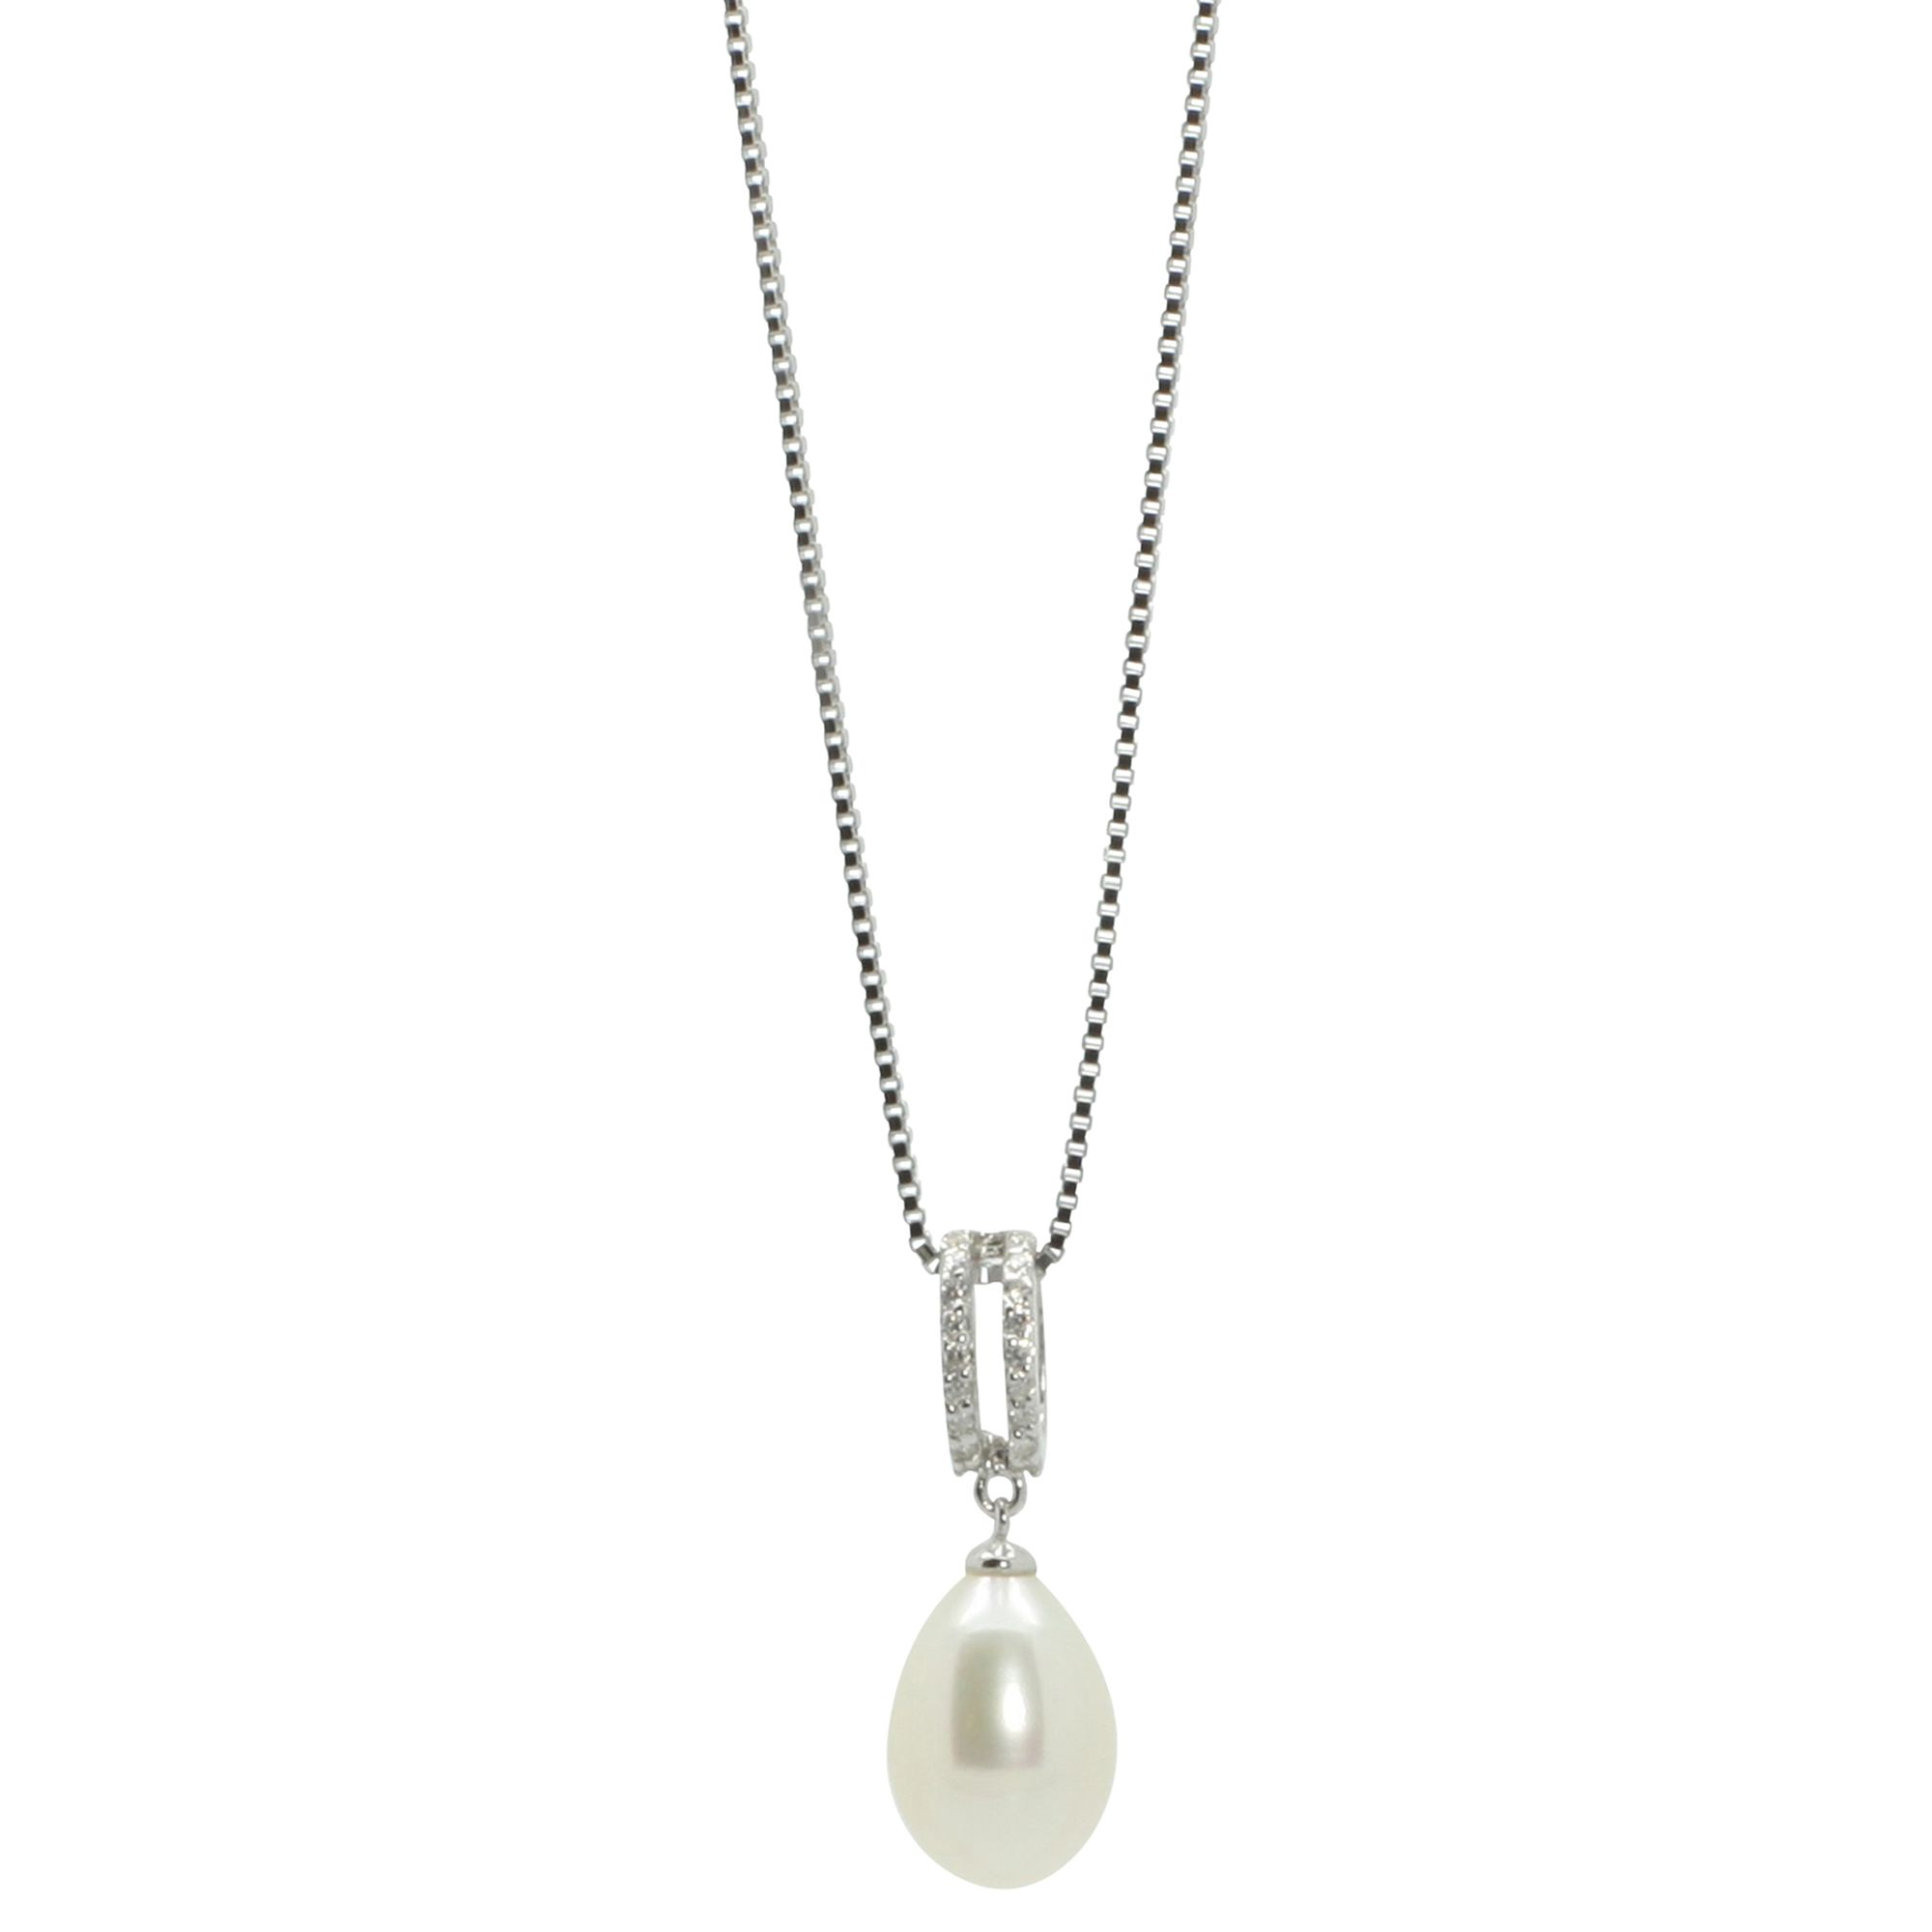 Lido Pearls Lido Pearls Double Row Cubic Zirconia Freshwater Pearl Drop Pendant Necklace, Silver/White